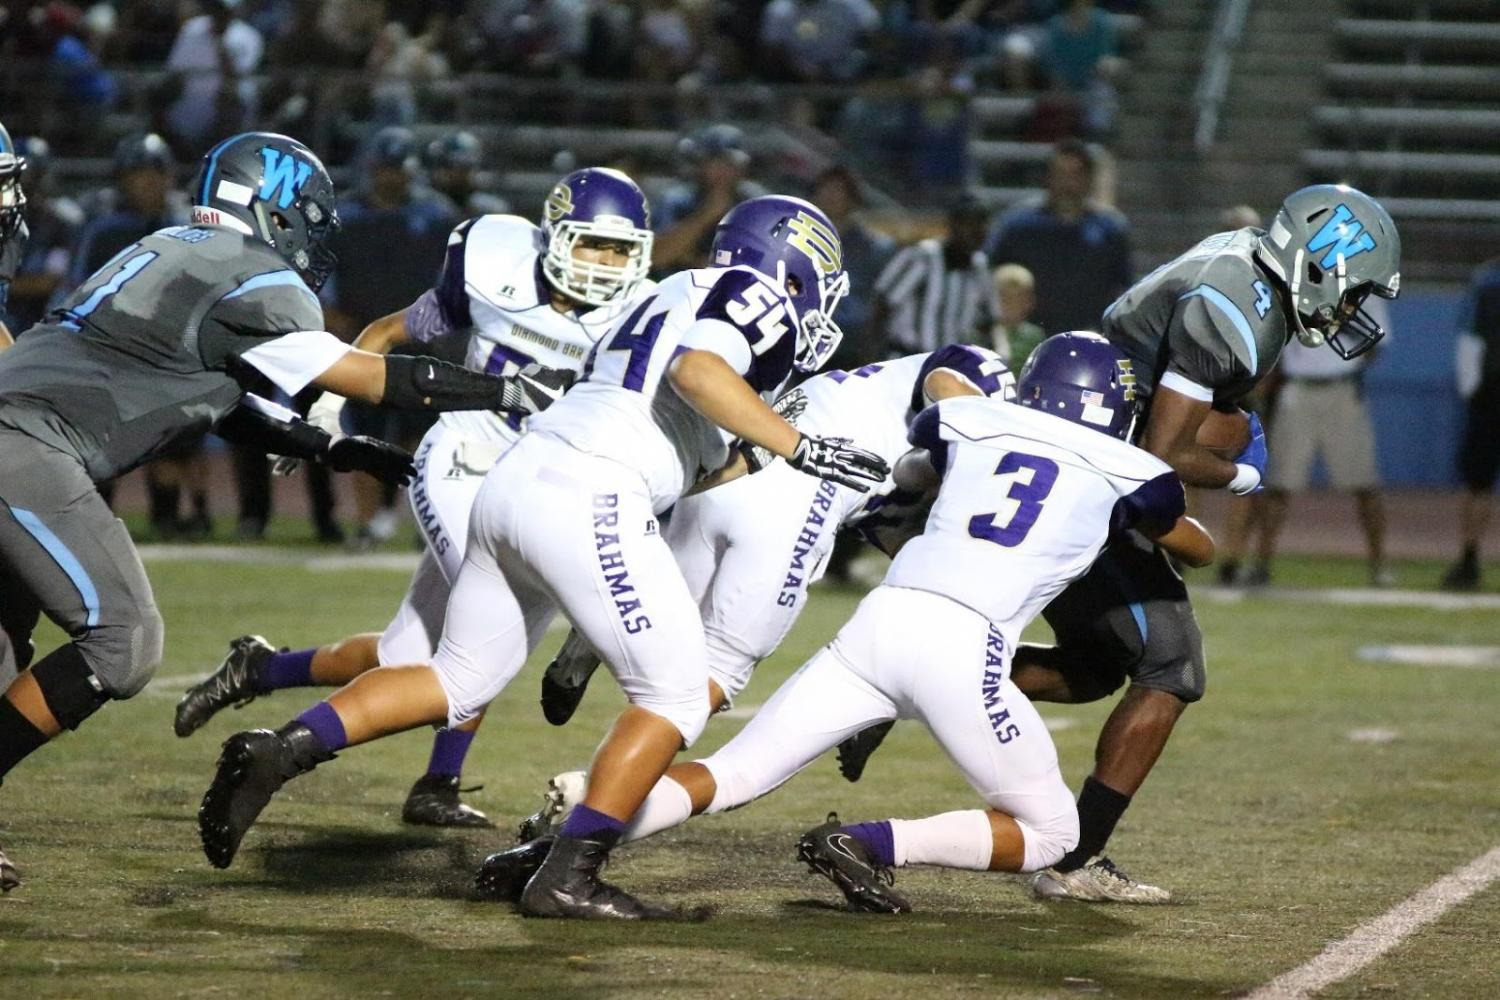 The Brahmas' six-year reign as the winner of the Branding Iron ended on Sept. 1 in a 21-15 loss against Walnut.